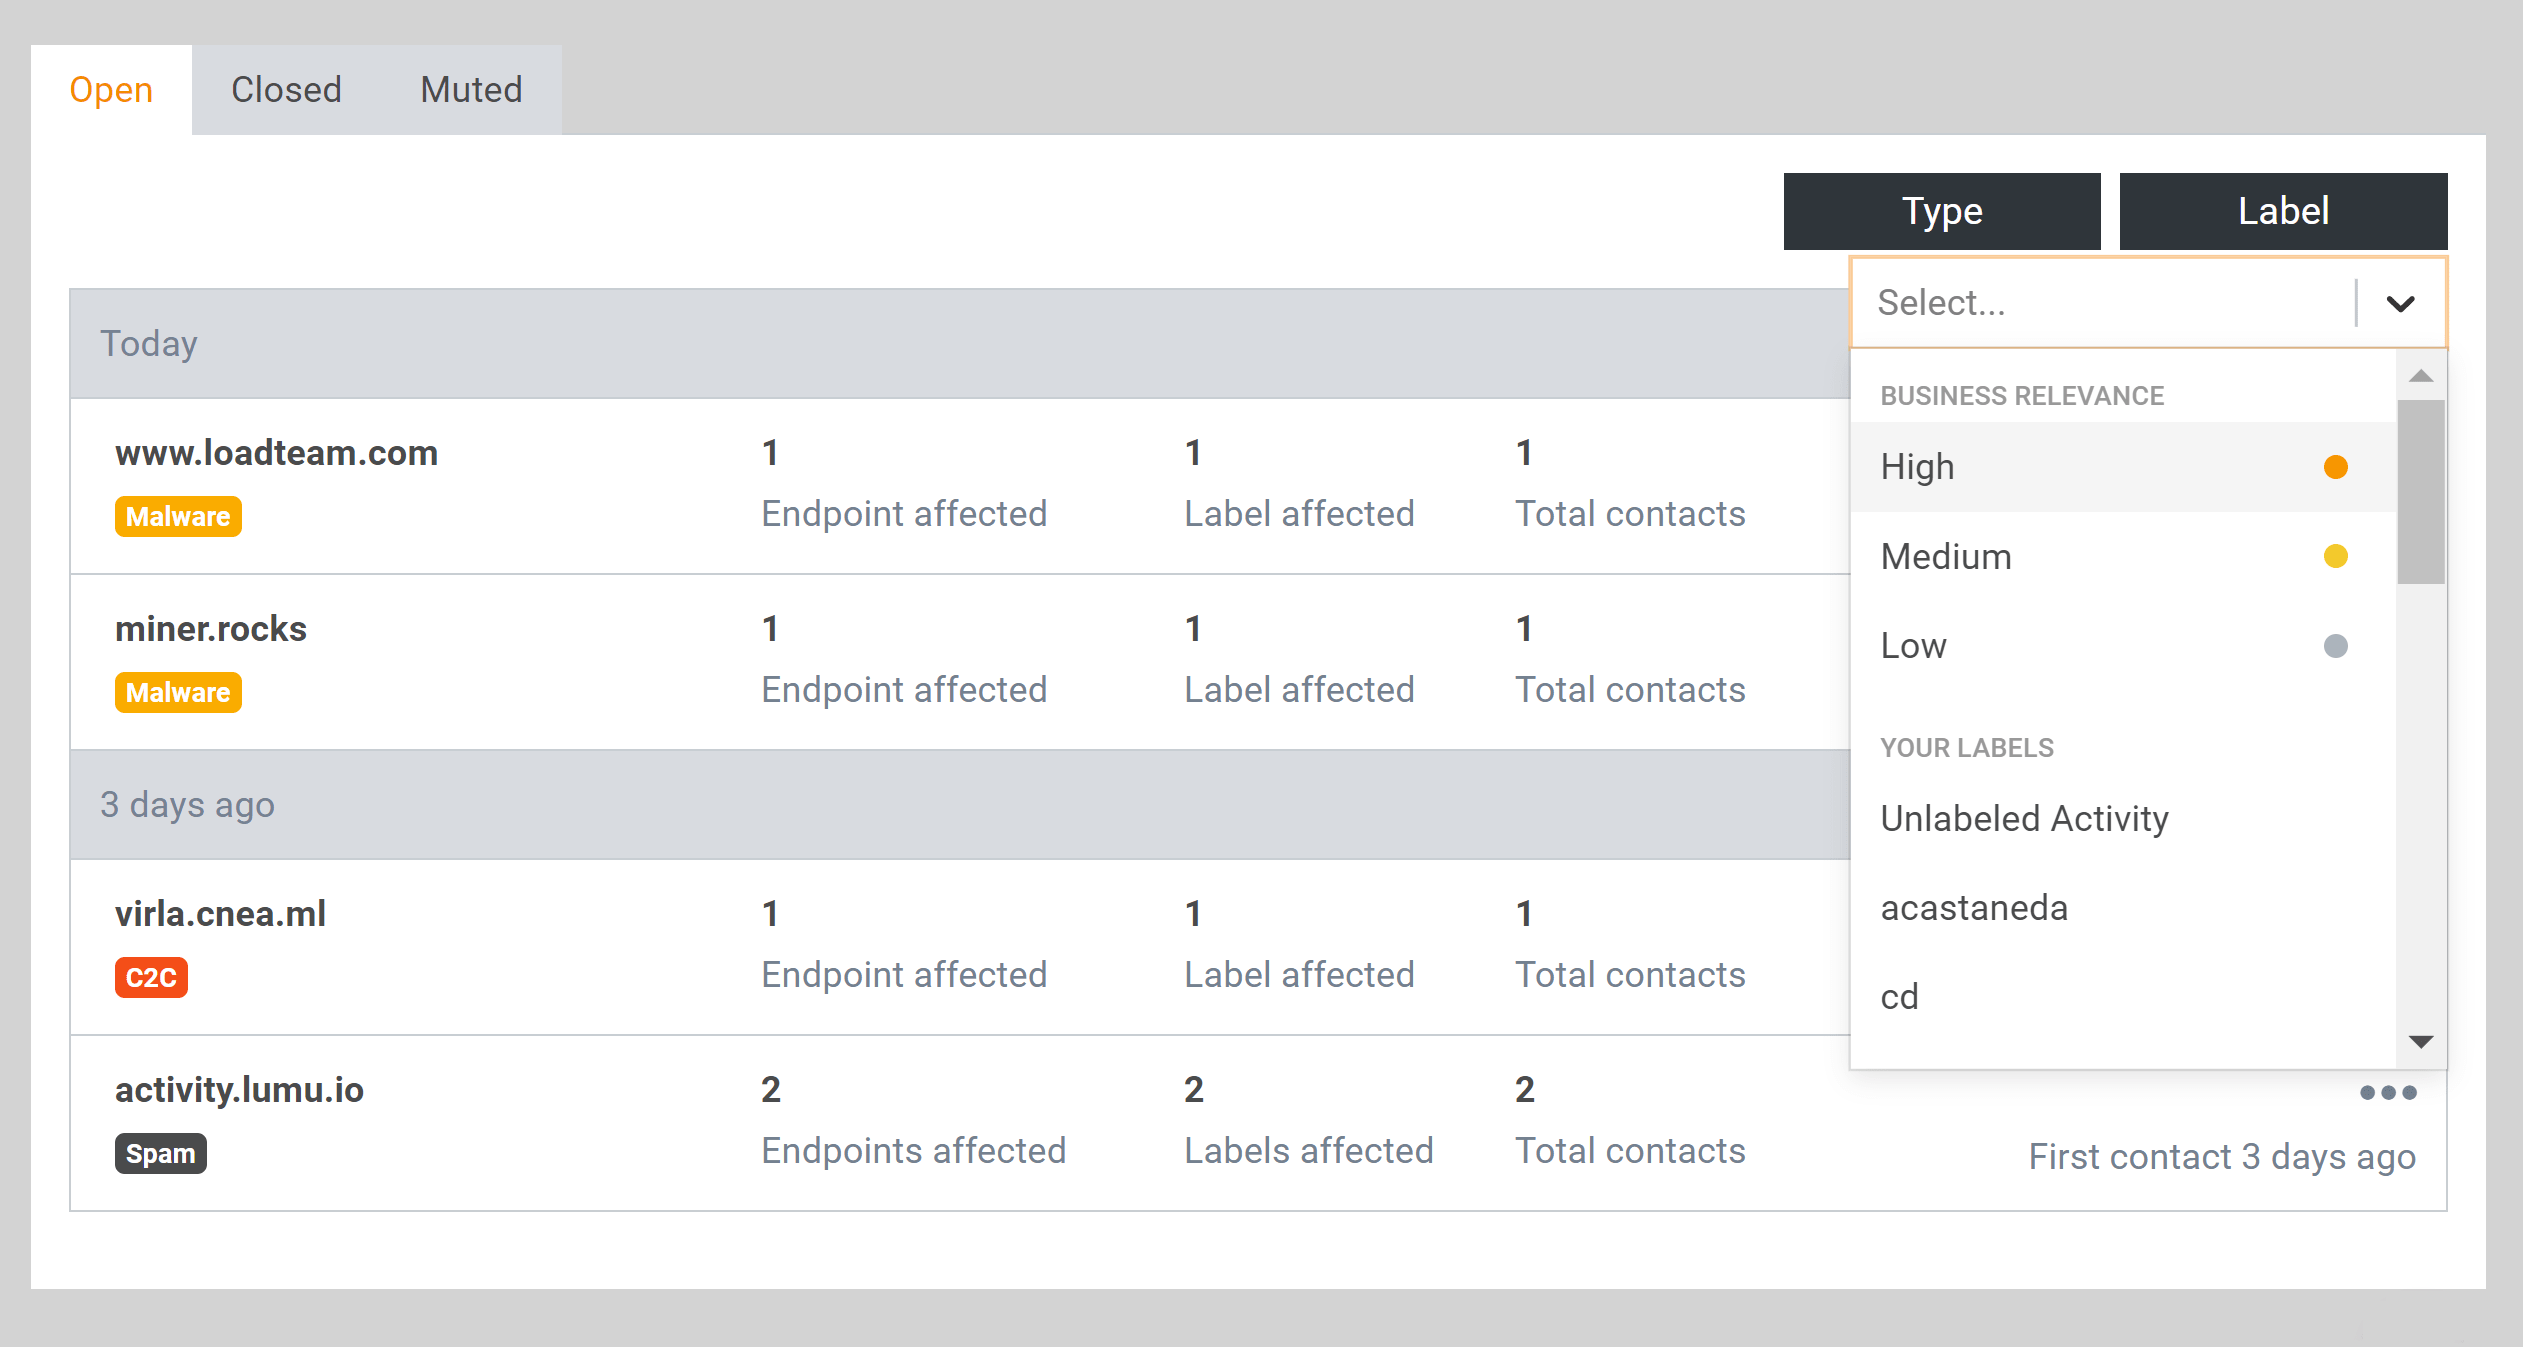 Incident filtering using labels and business relevance